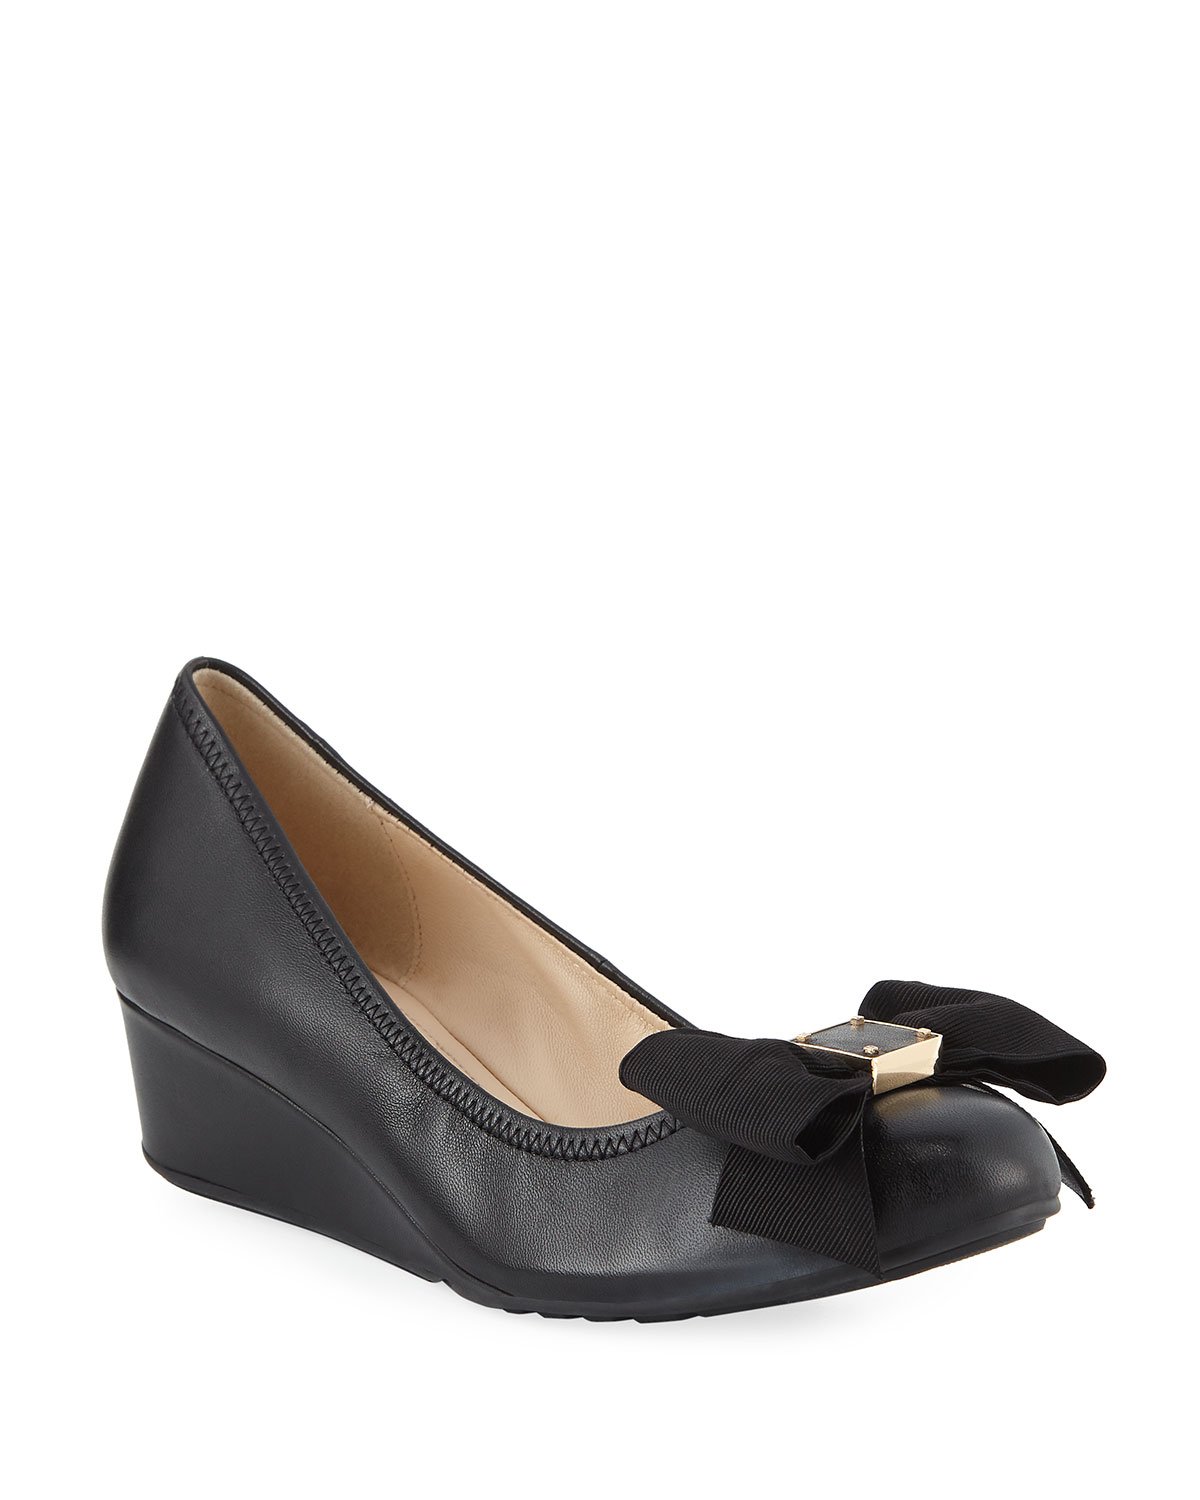 066a18df675 Cole Haan Tali Grand Soft Bow Wedge Pumps